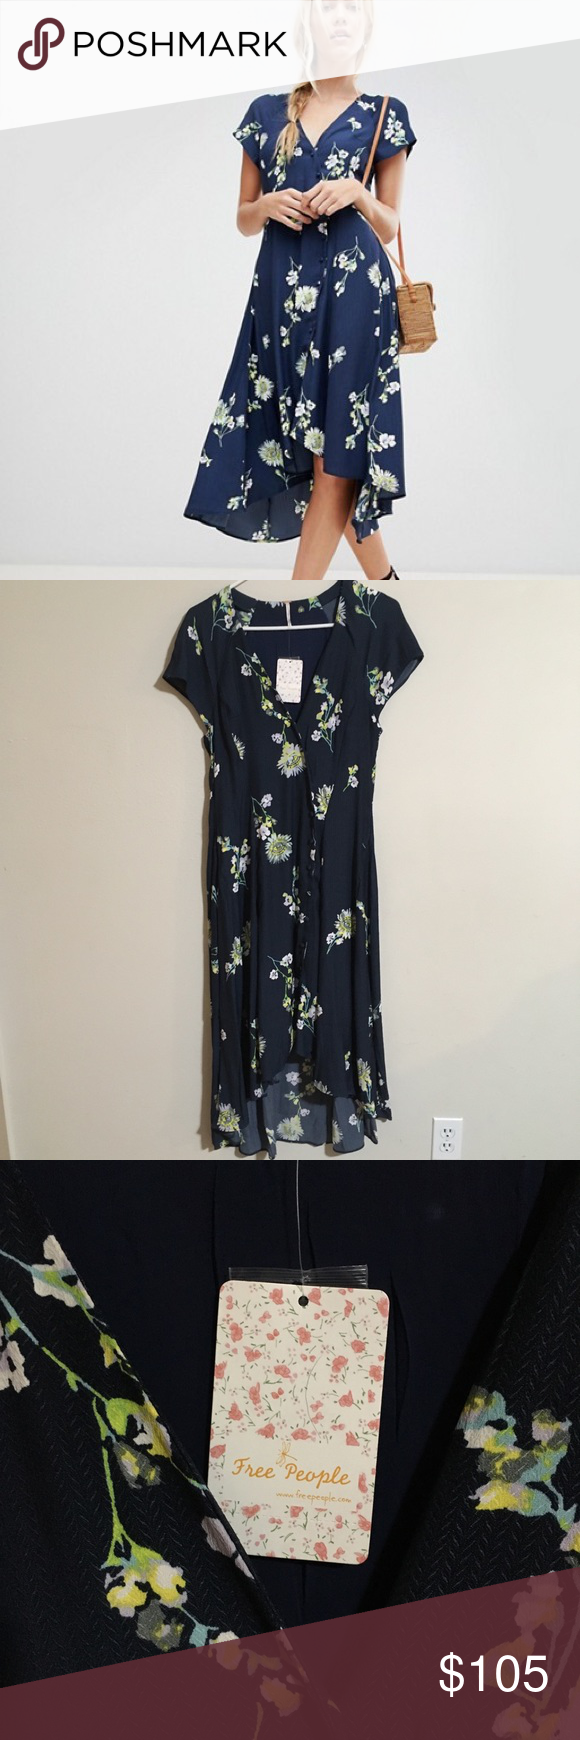 dd92b60196f5 Free People   Lost In You High Low Midi Dress New with tags not used no